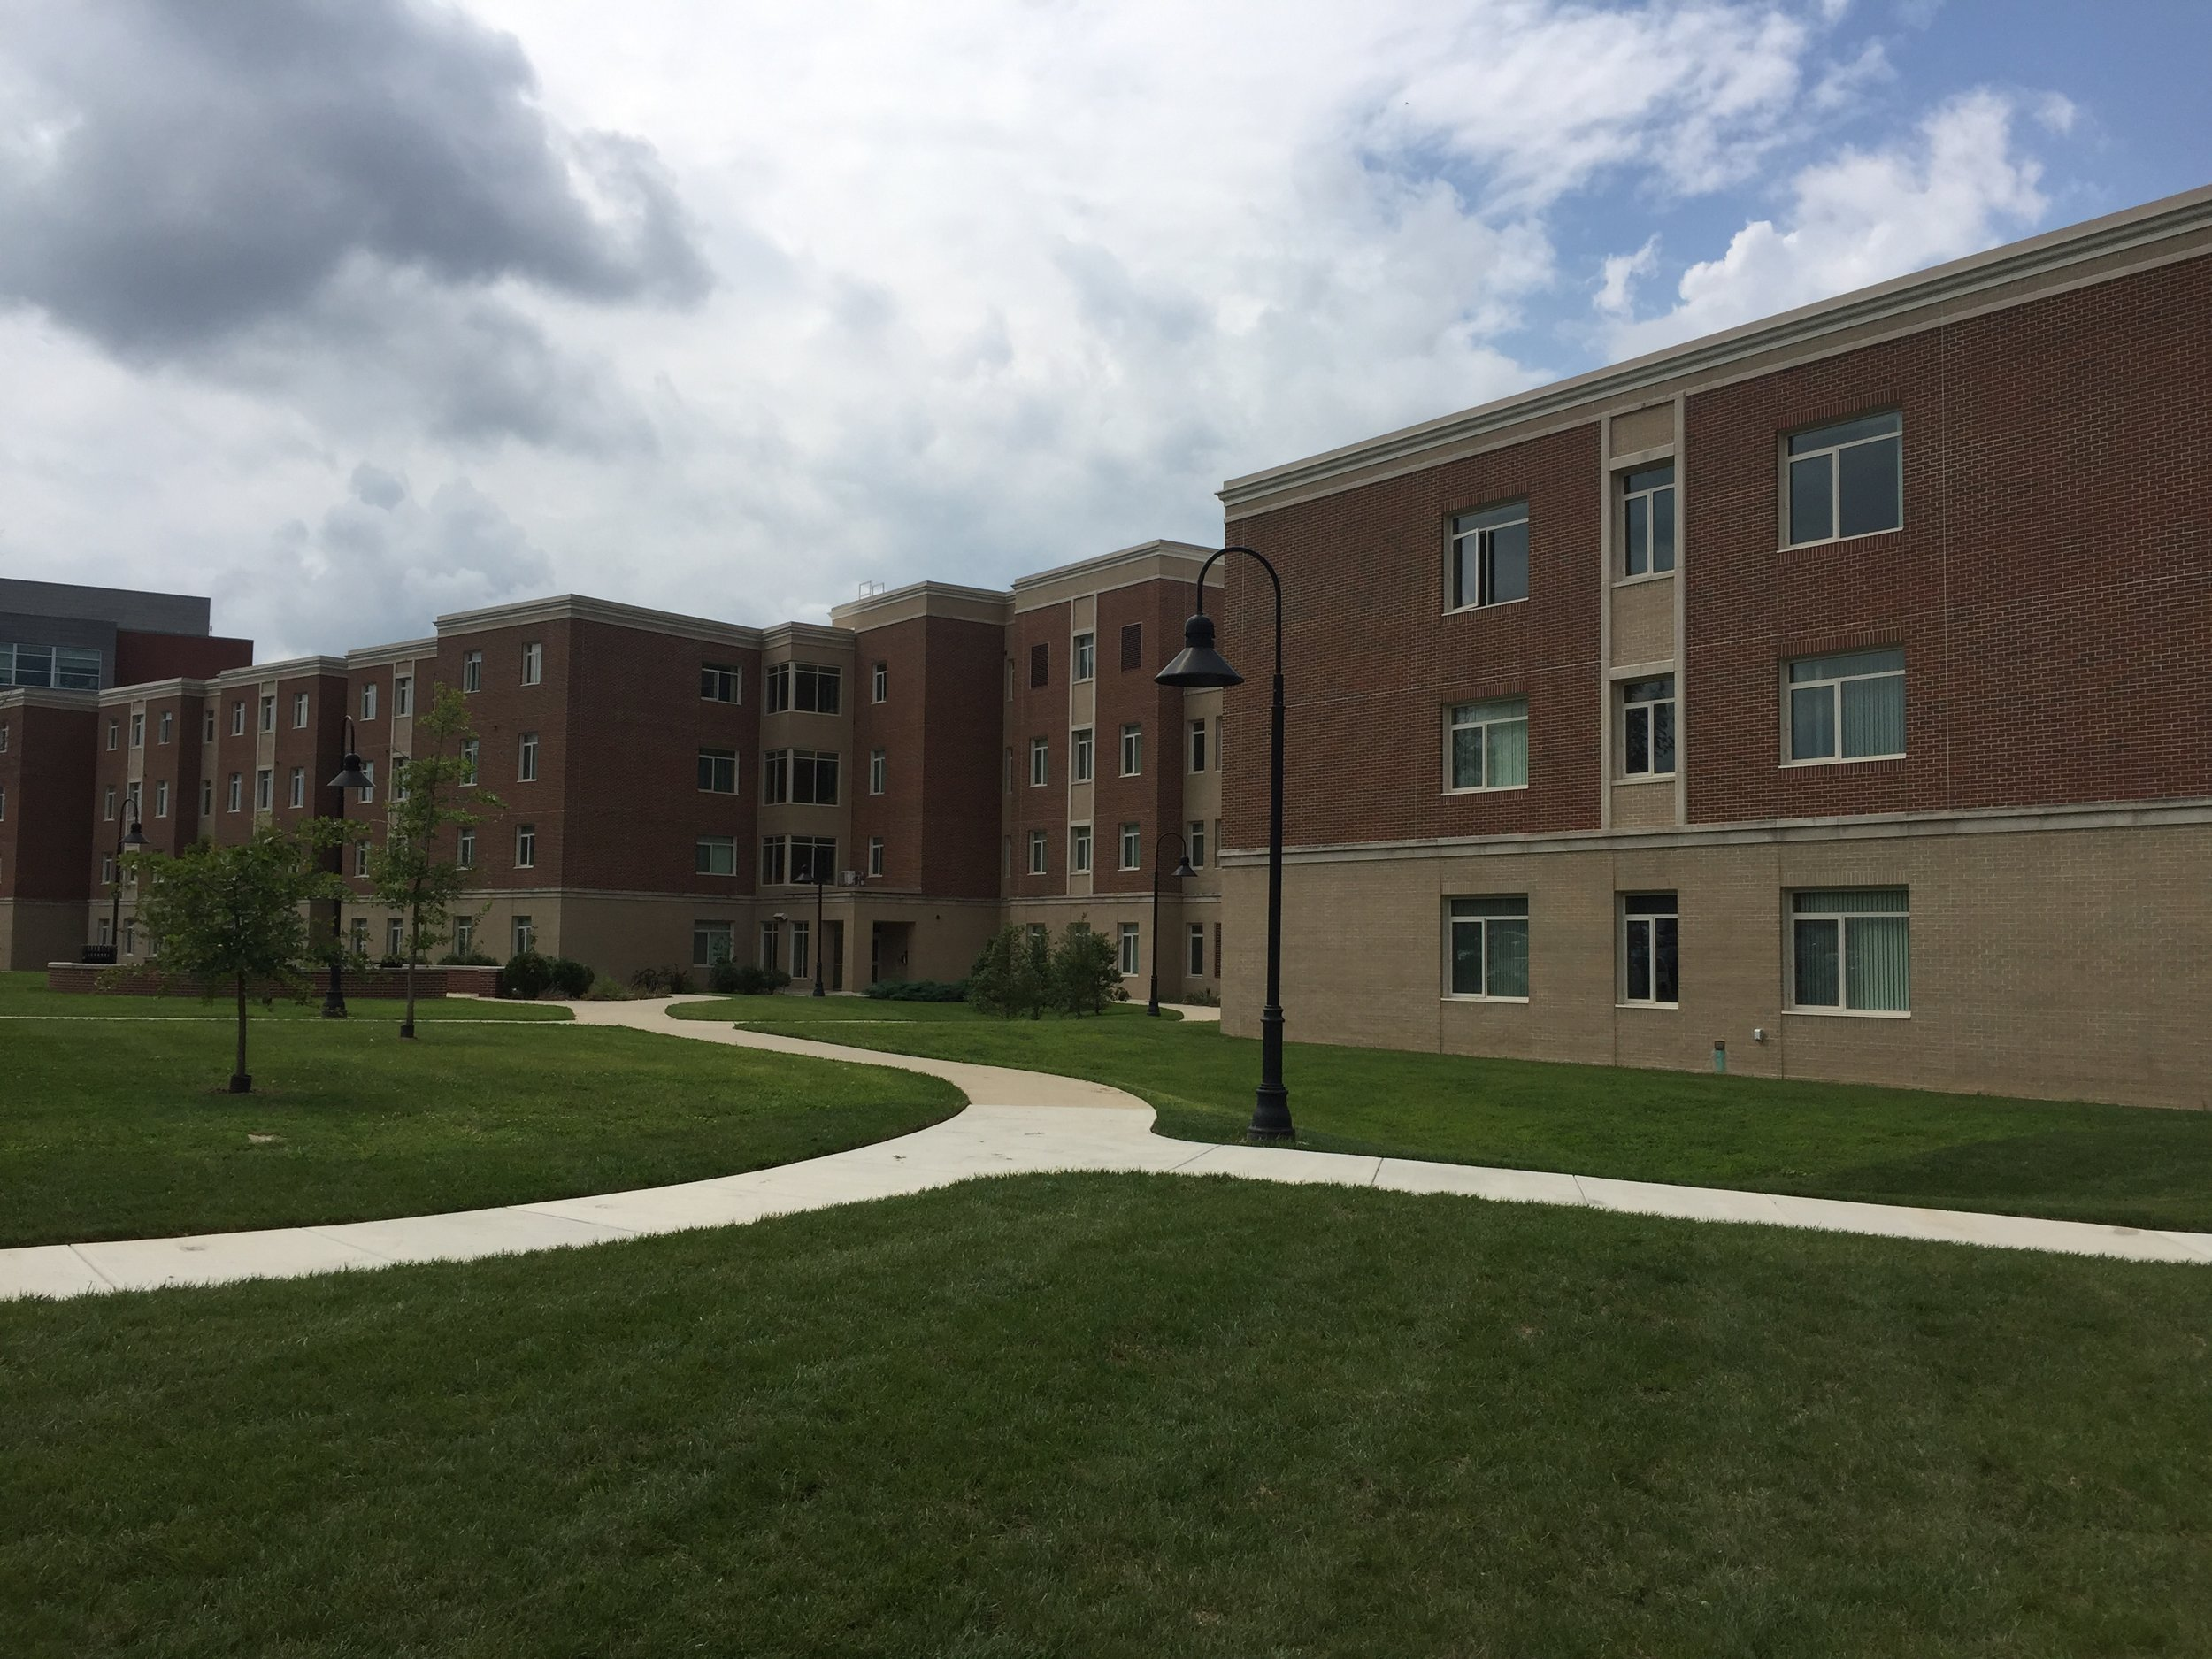 EKU New Student Housing - 29.0% reduction in annual energy costs45.0% water savings - exemplary